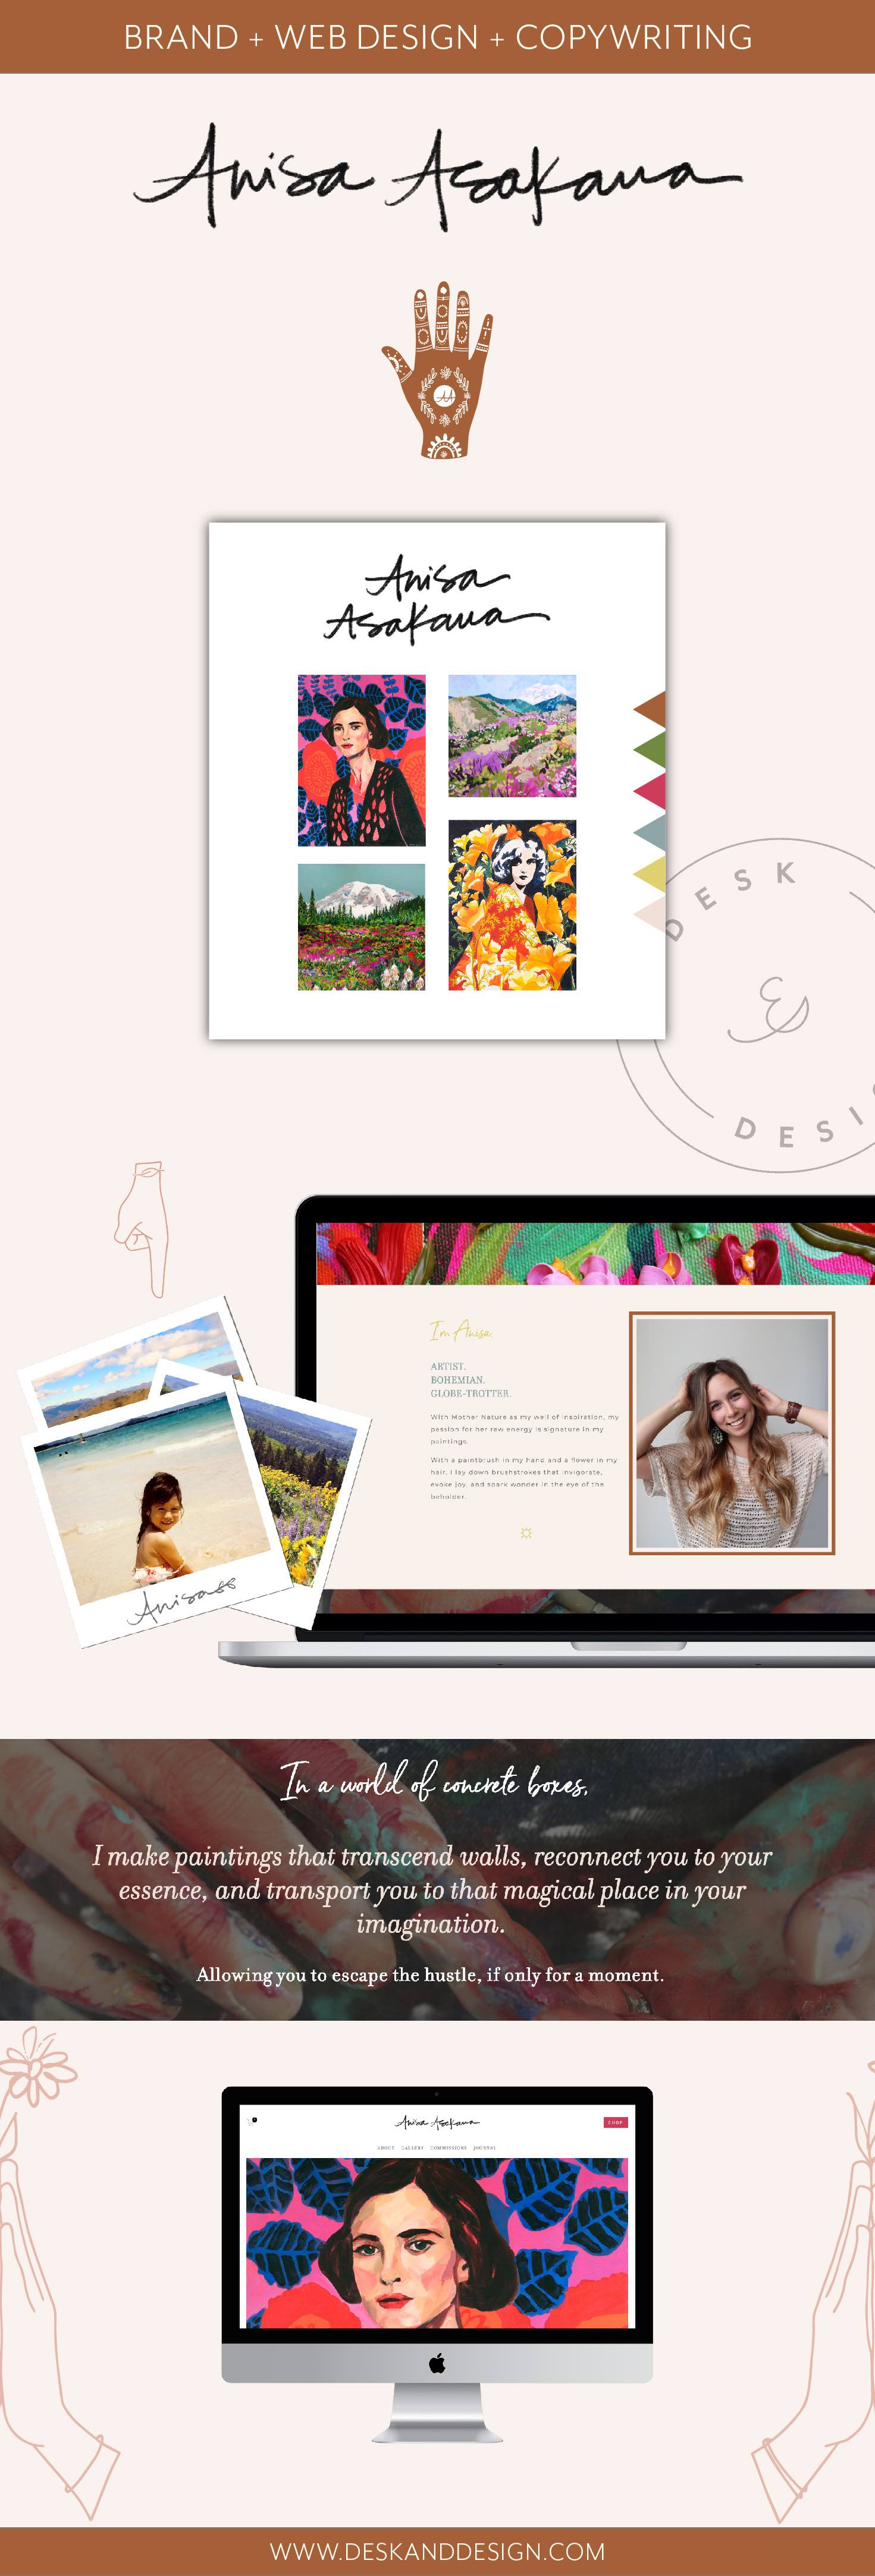 Squarespace web design, branding, and copy for fine artists by Desk and Design.